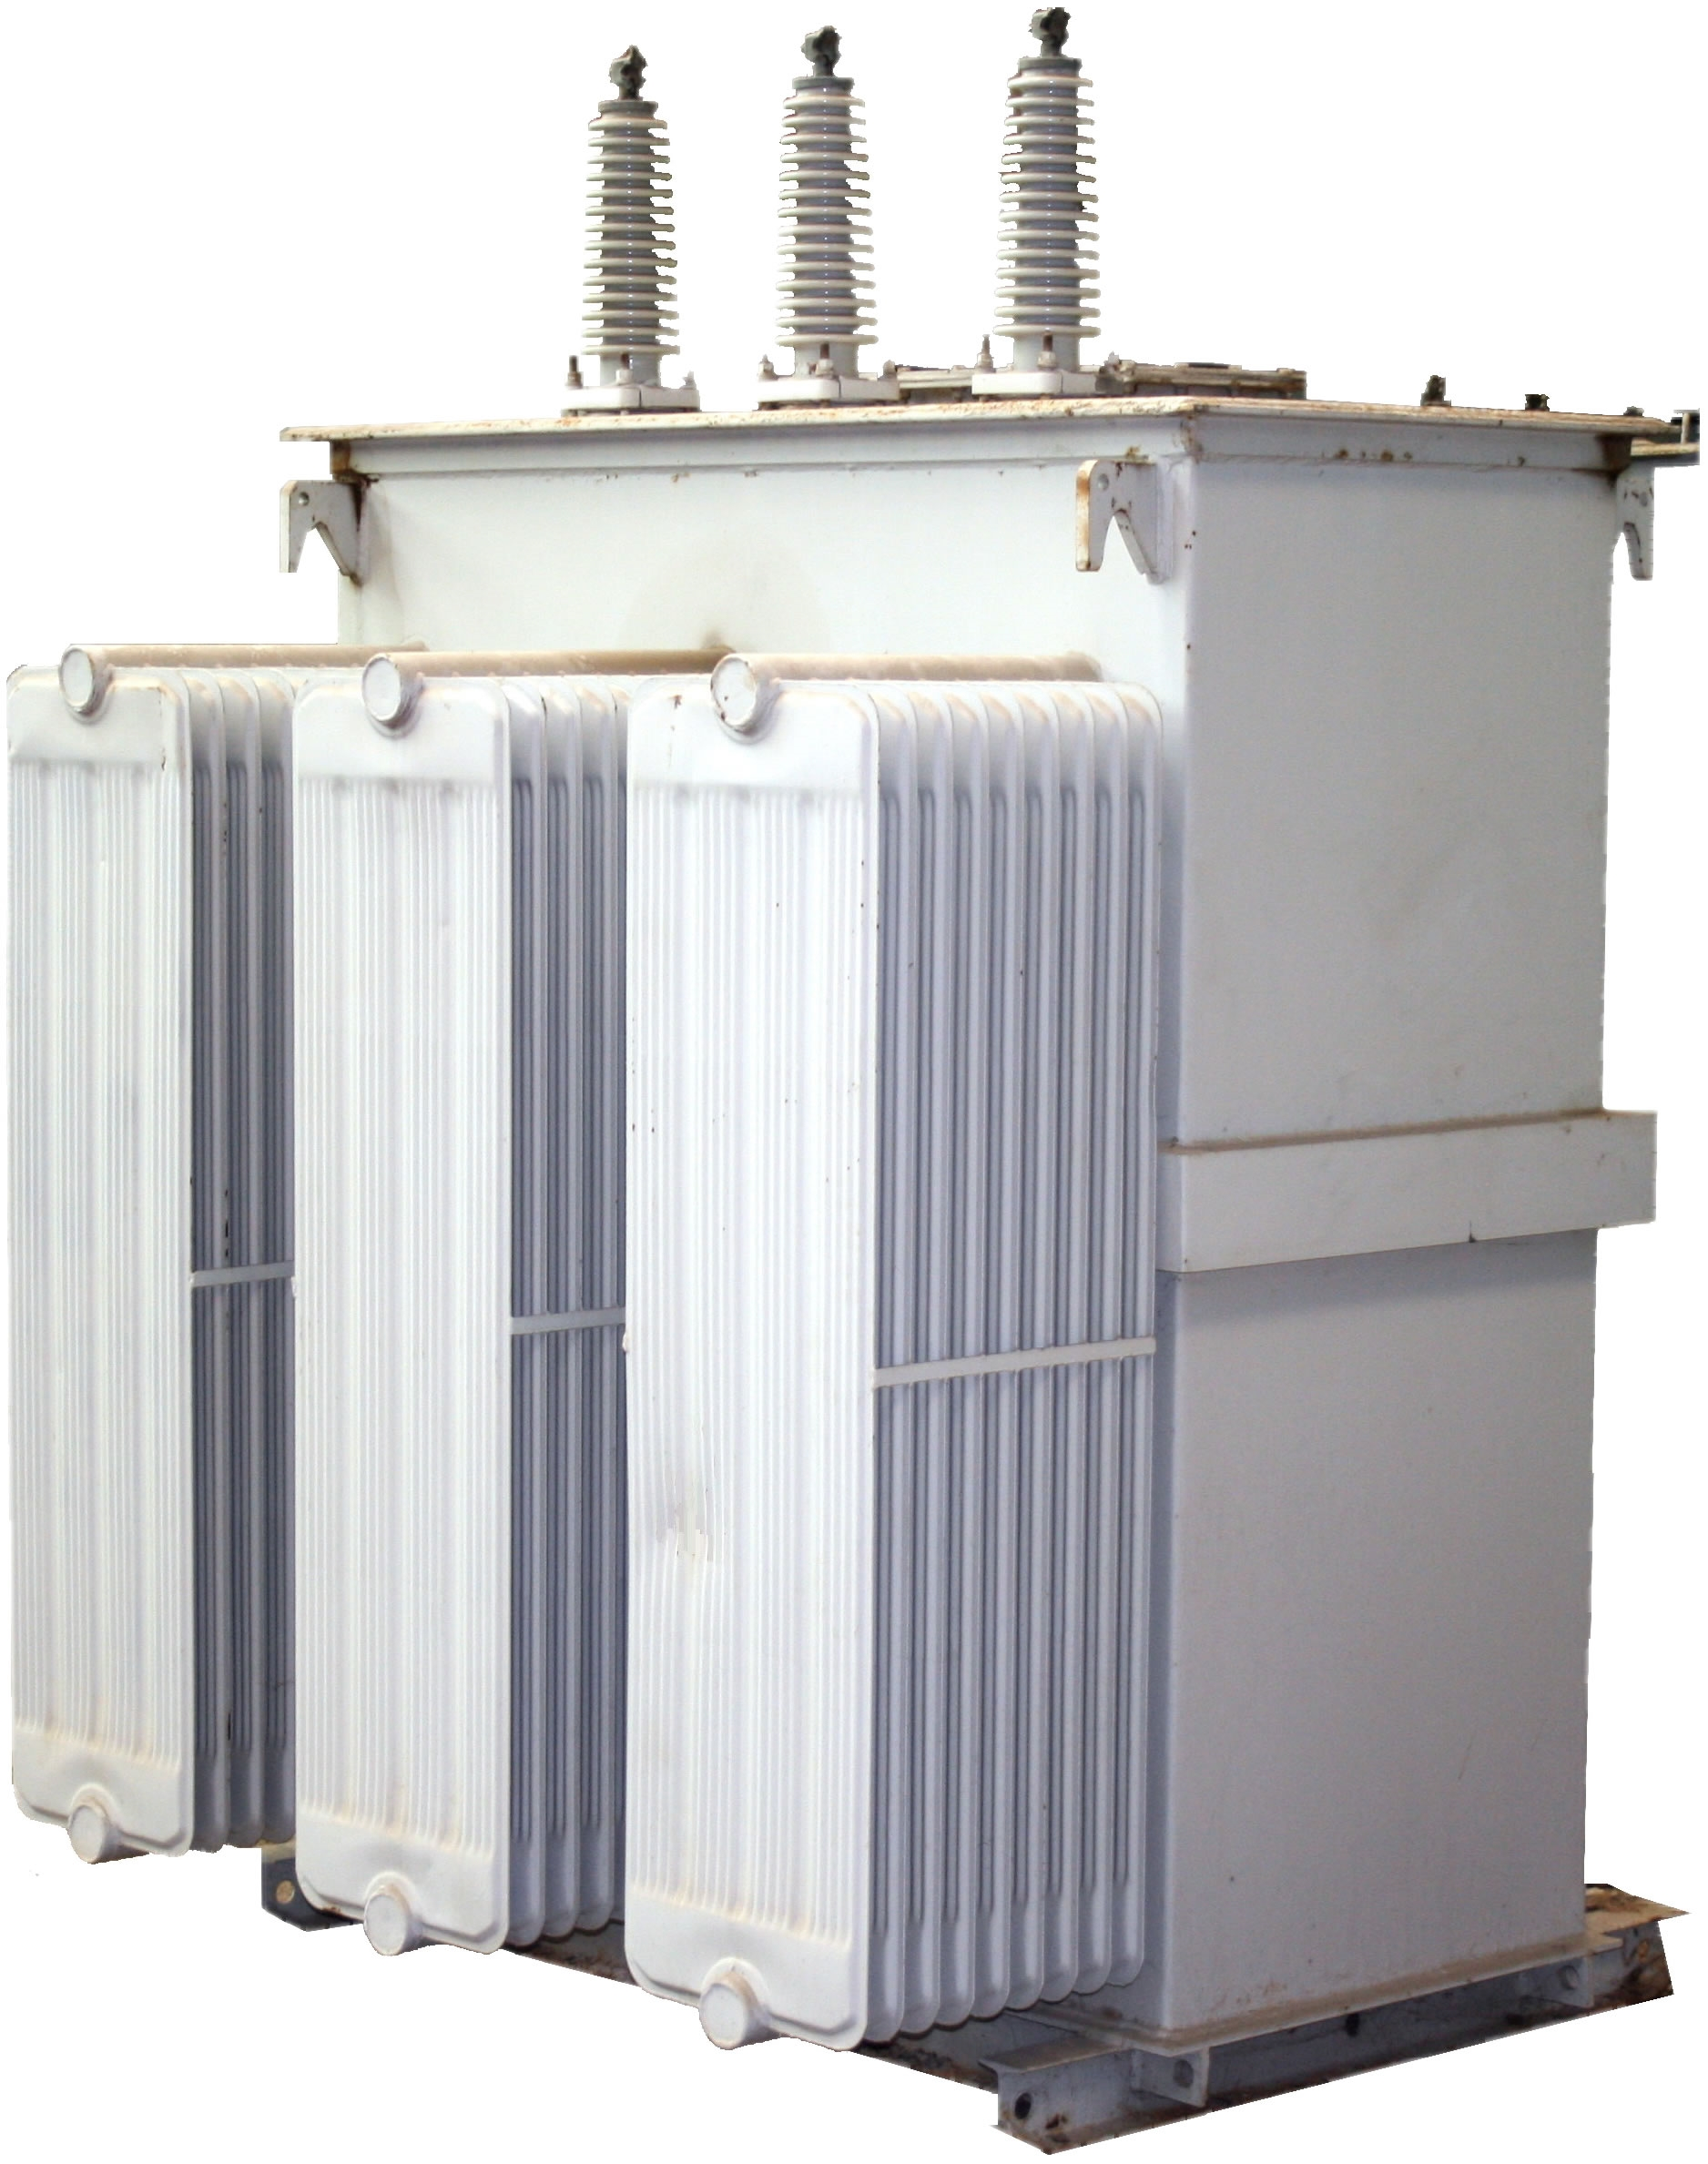 Oil & Fluid Filled Transformer Inventory